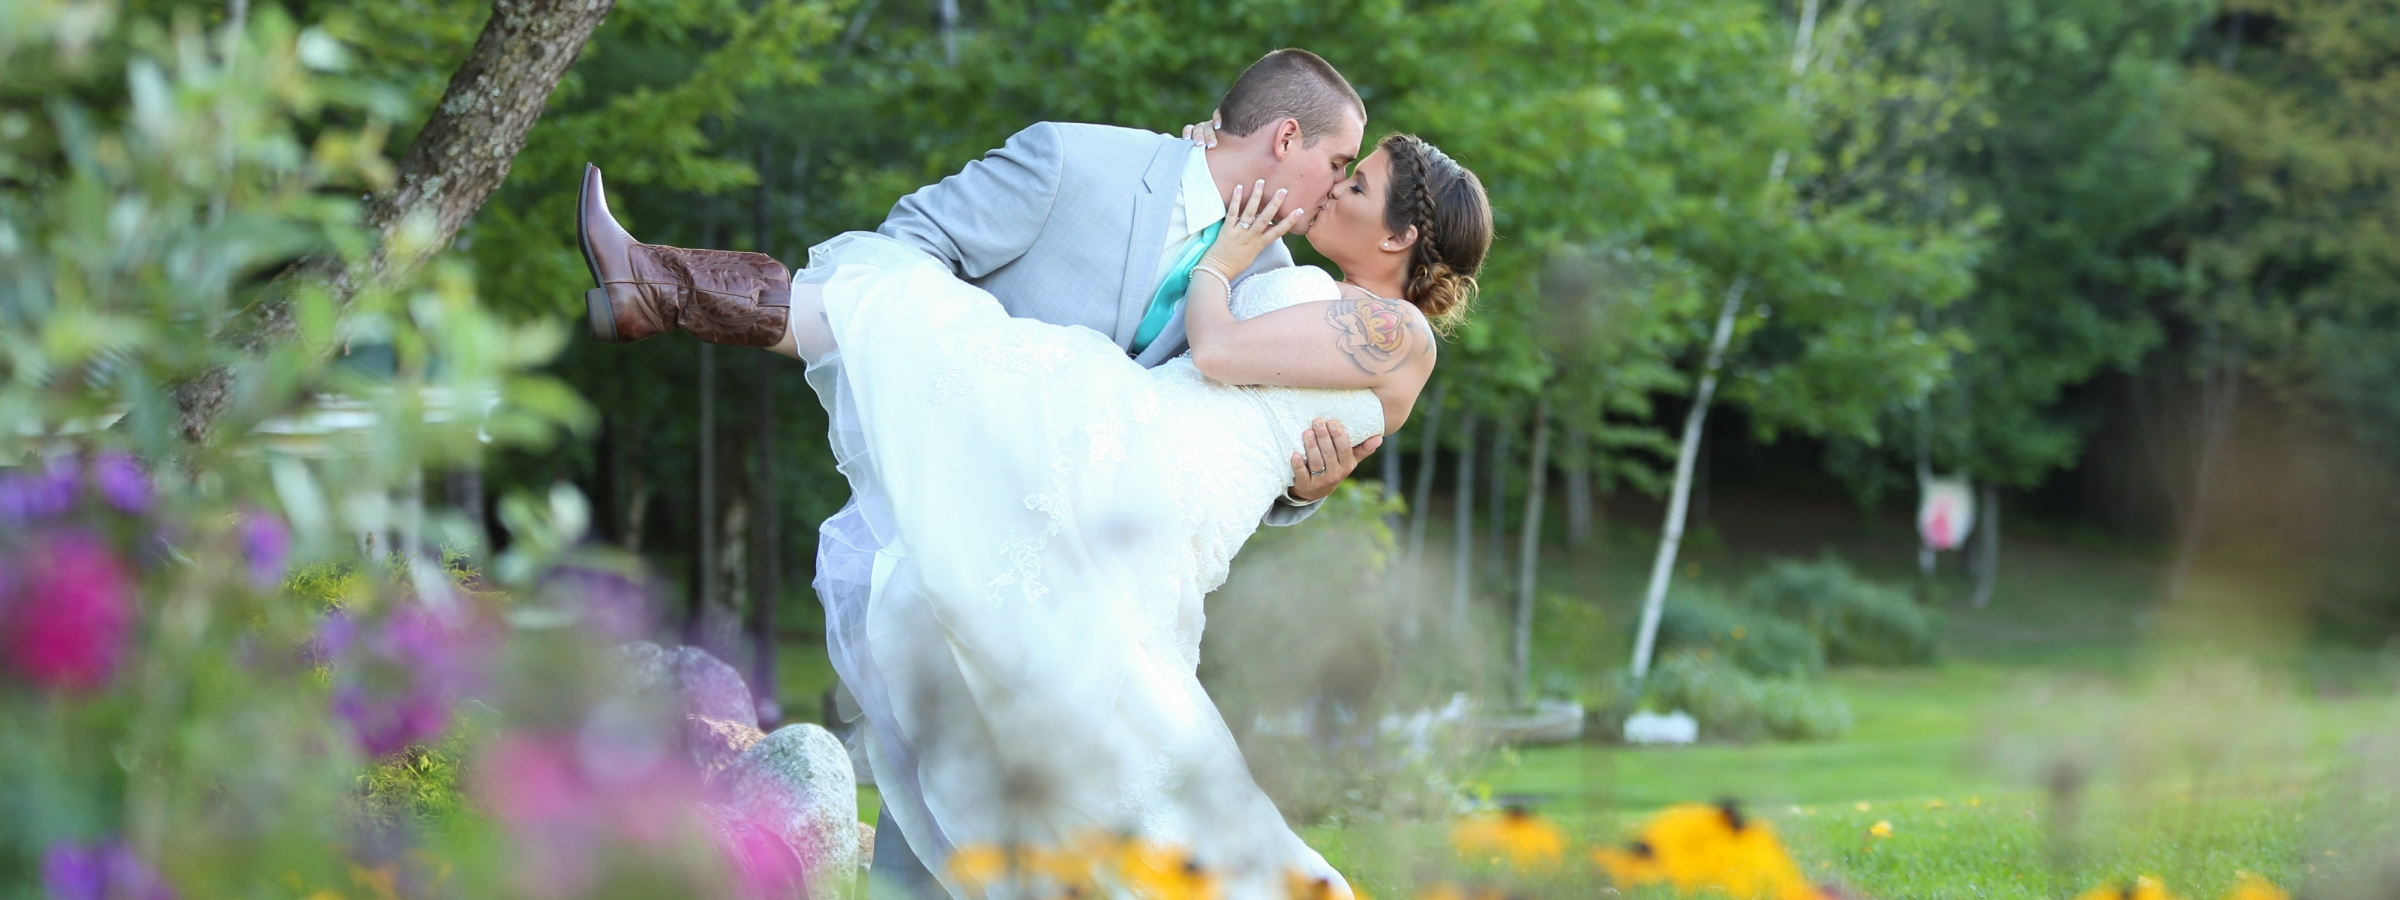 View More: http://photos.pass.us/slefingerwedding